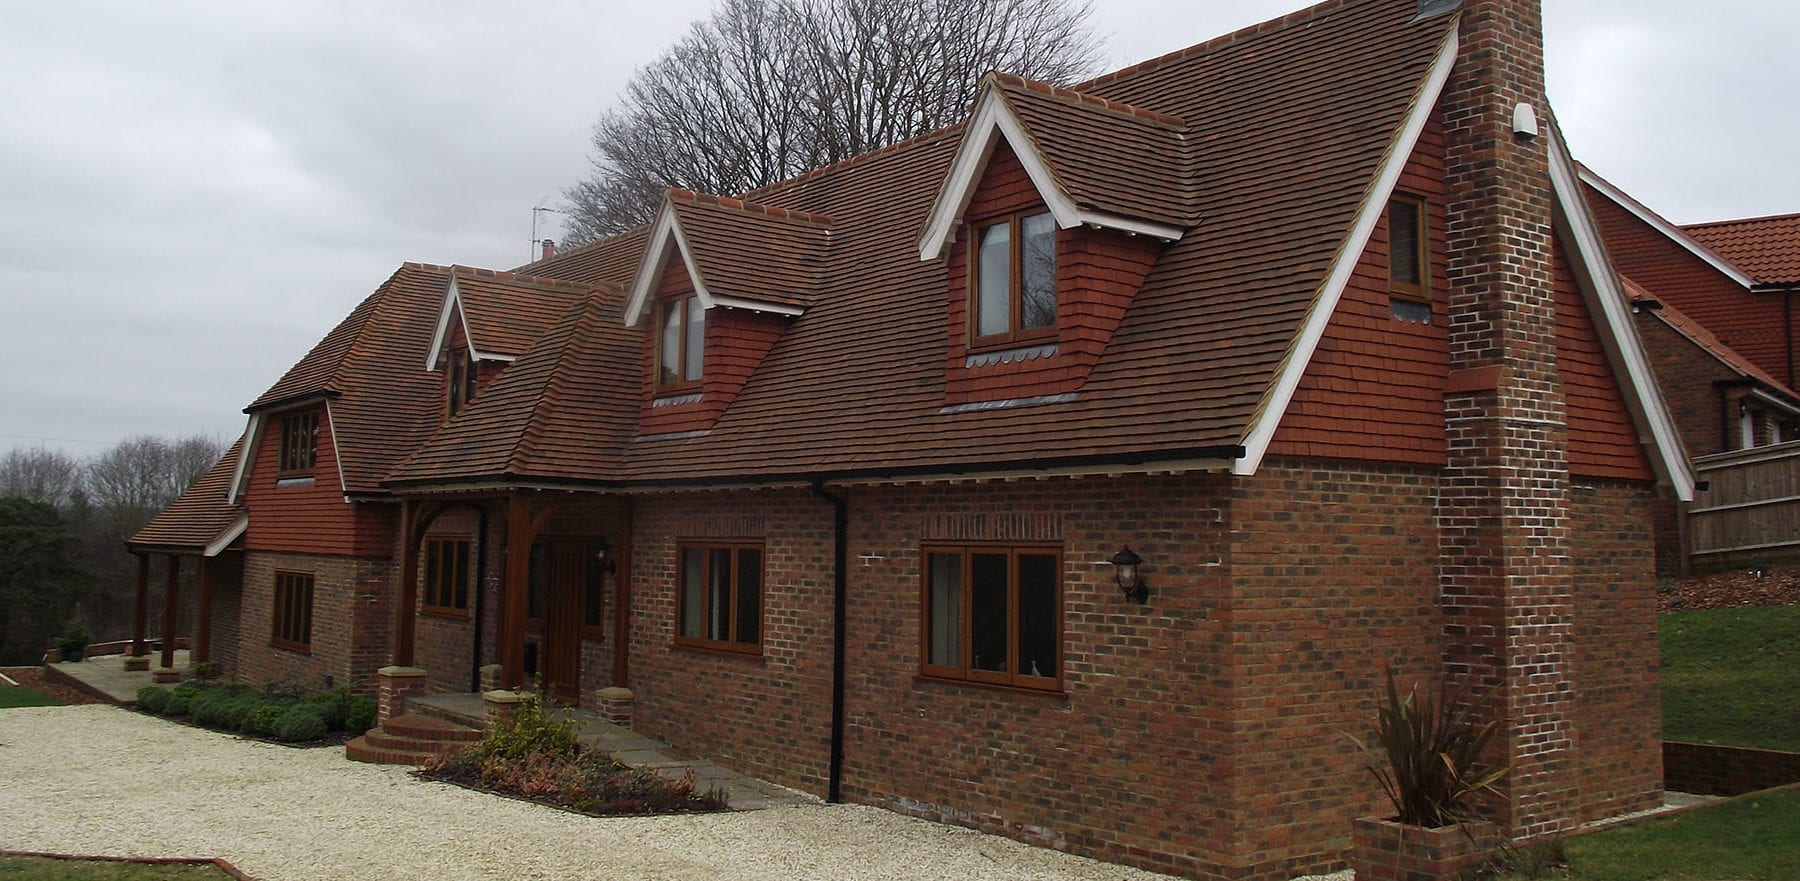 Lifestiles - Handcrafted Autumn Clay Roof Tiles - Sussex, England 2